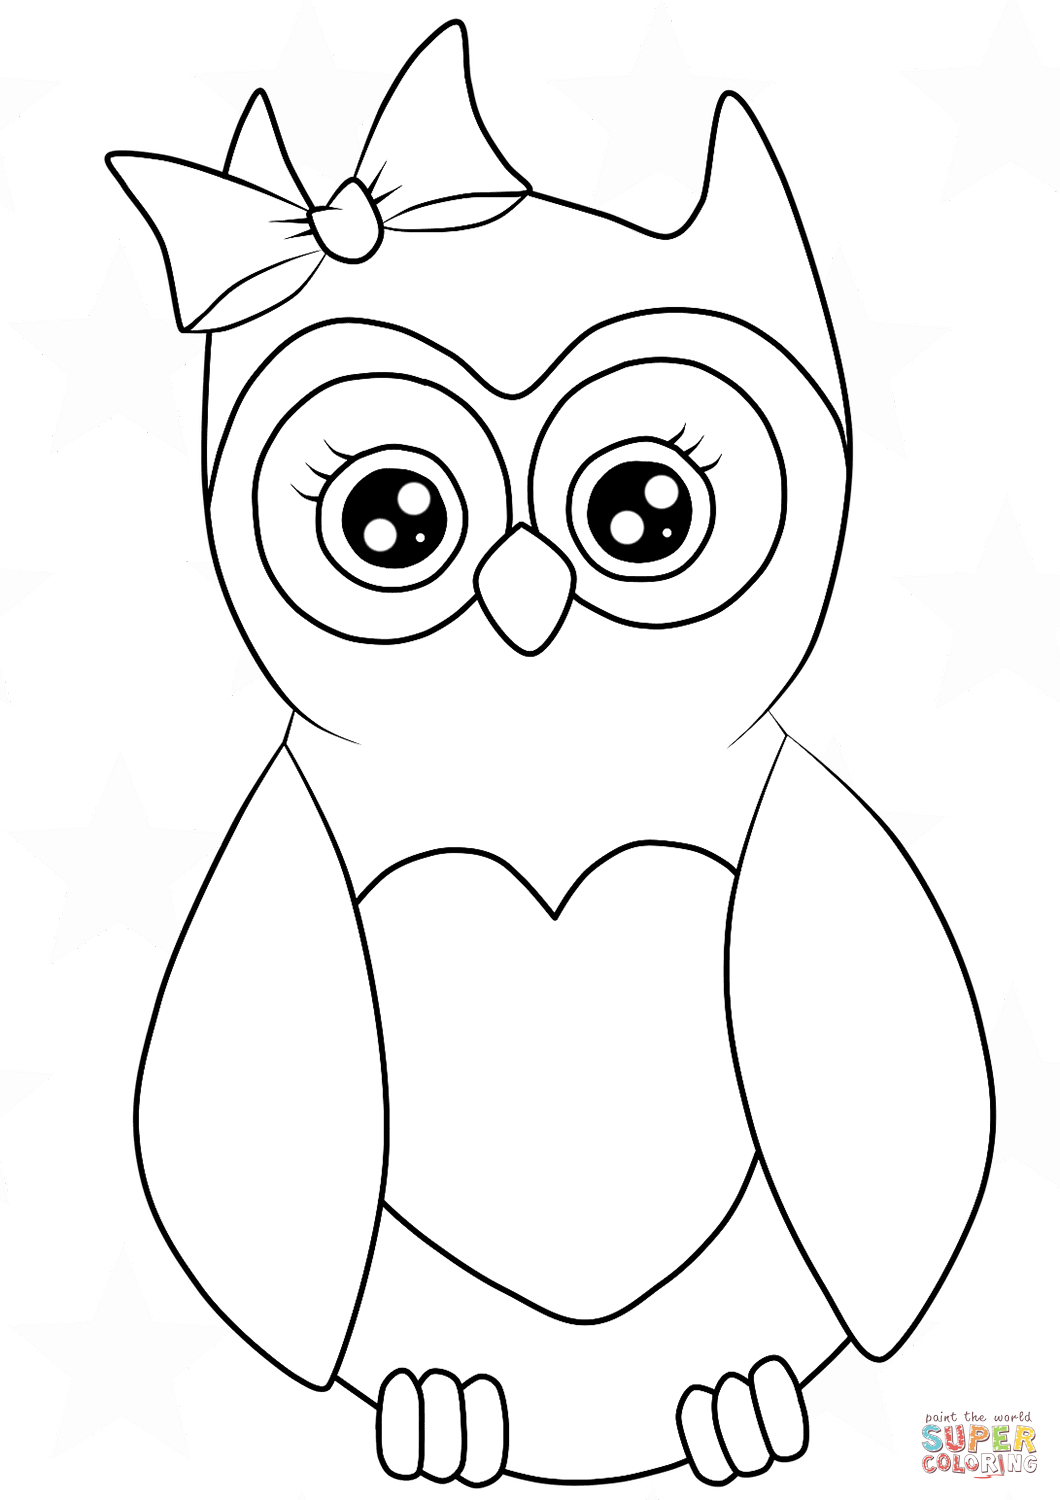 cute owl coloring pictures cute owl coloring pages for adults coloring pages pictures cute owl coloring